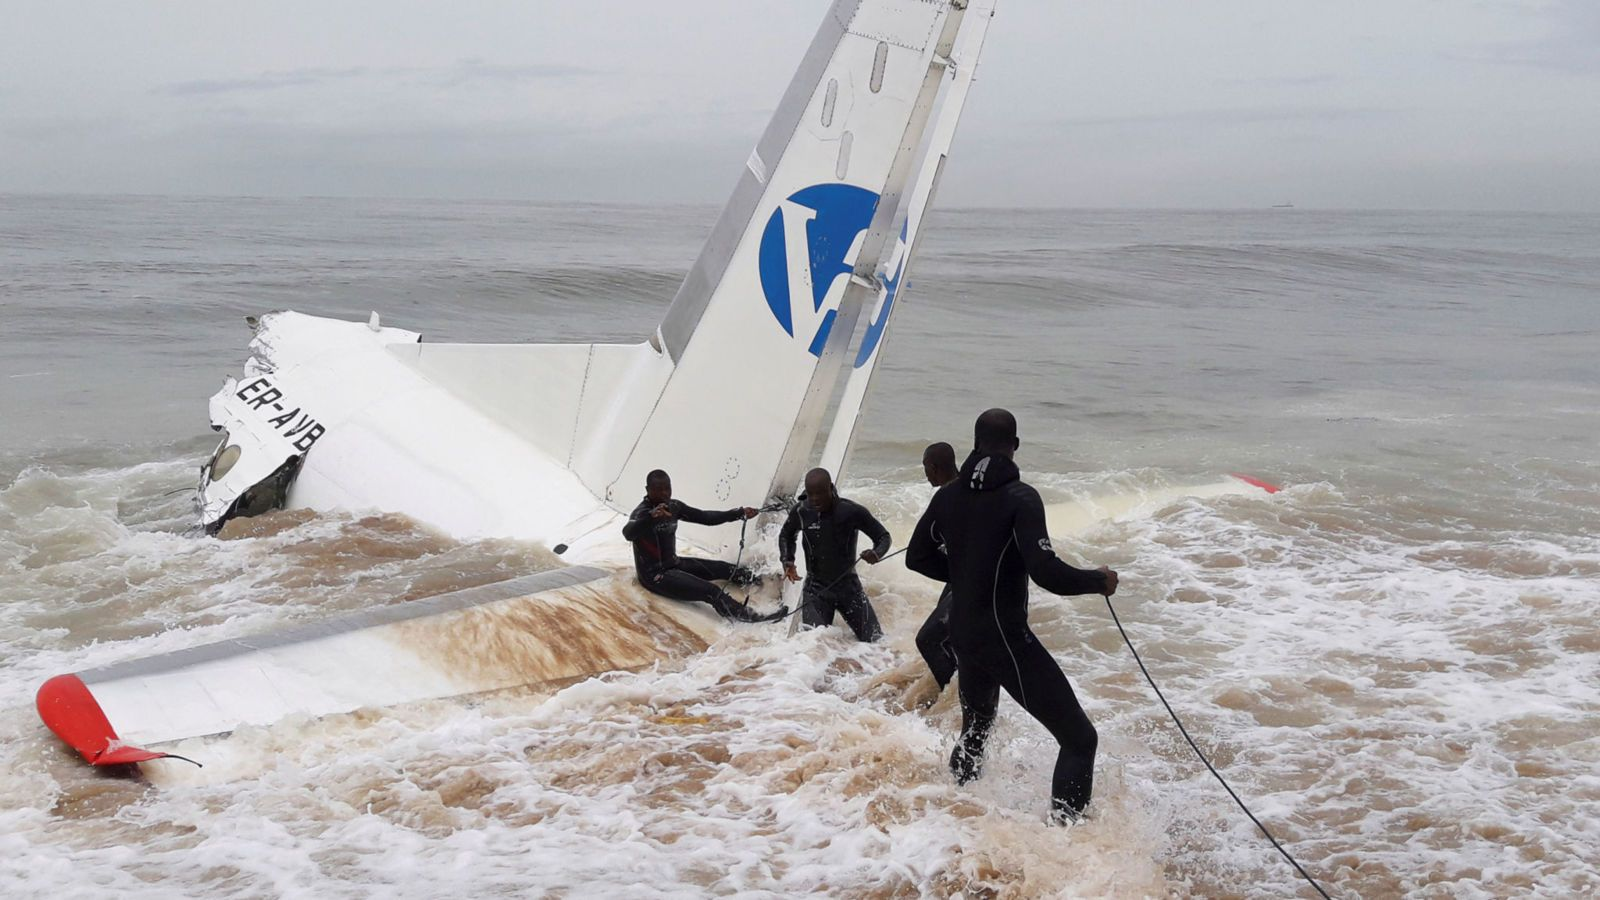 A plane chartered by the French military to transport goods for an anti-jihadist operation has crashed into the sea off Ivory Coast.  Four people, all from Moldova, died, and a further six, some of whom are French nationals, were injured. The Antonov propeller cargo plane came down close to the... - #Coas, #Crashes, #French, #Ivory, #Military, #News, #Plane